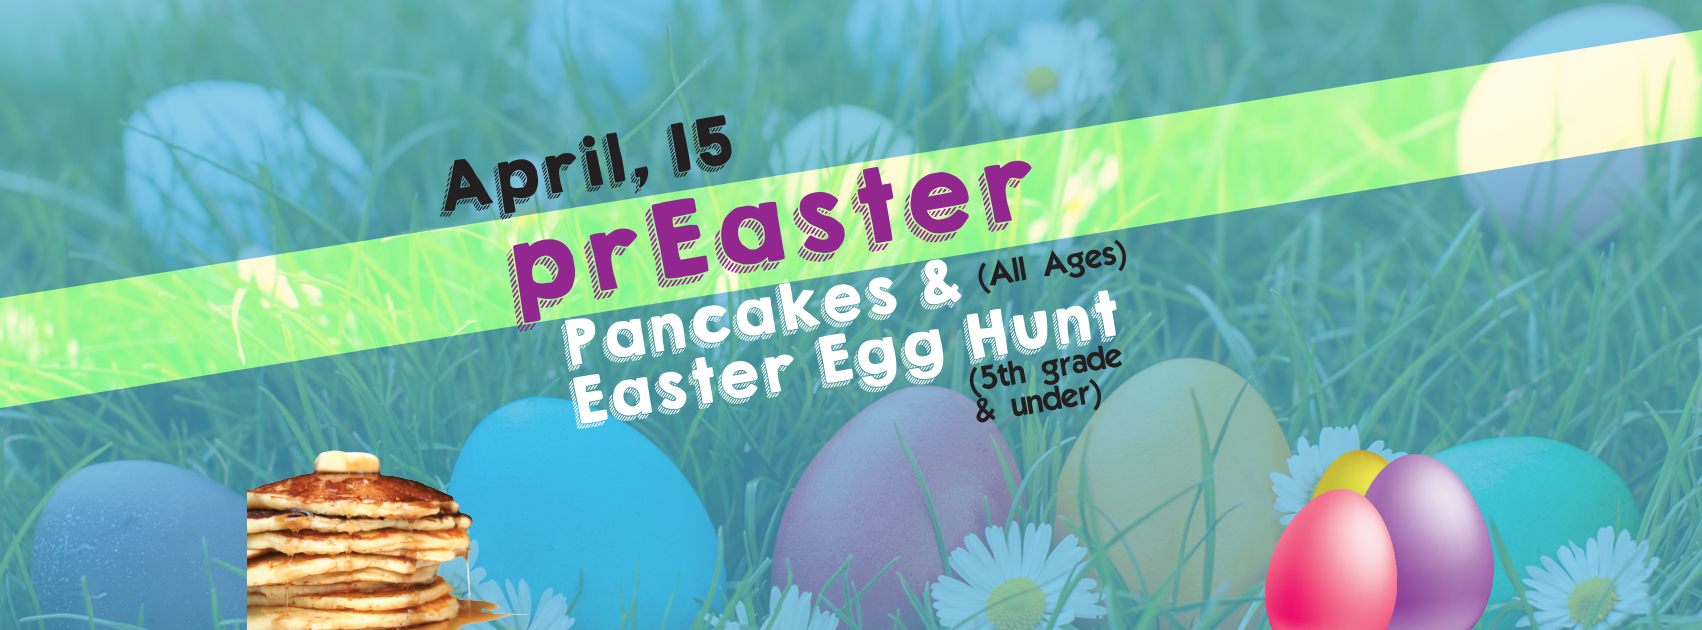 prEaster Pancakes and Easter Egg Hunt